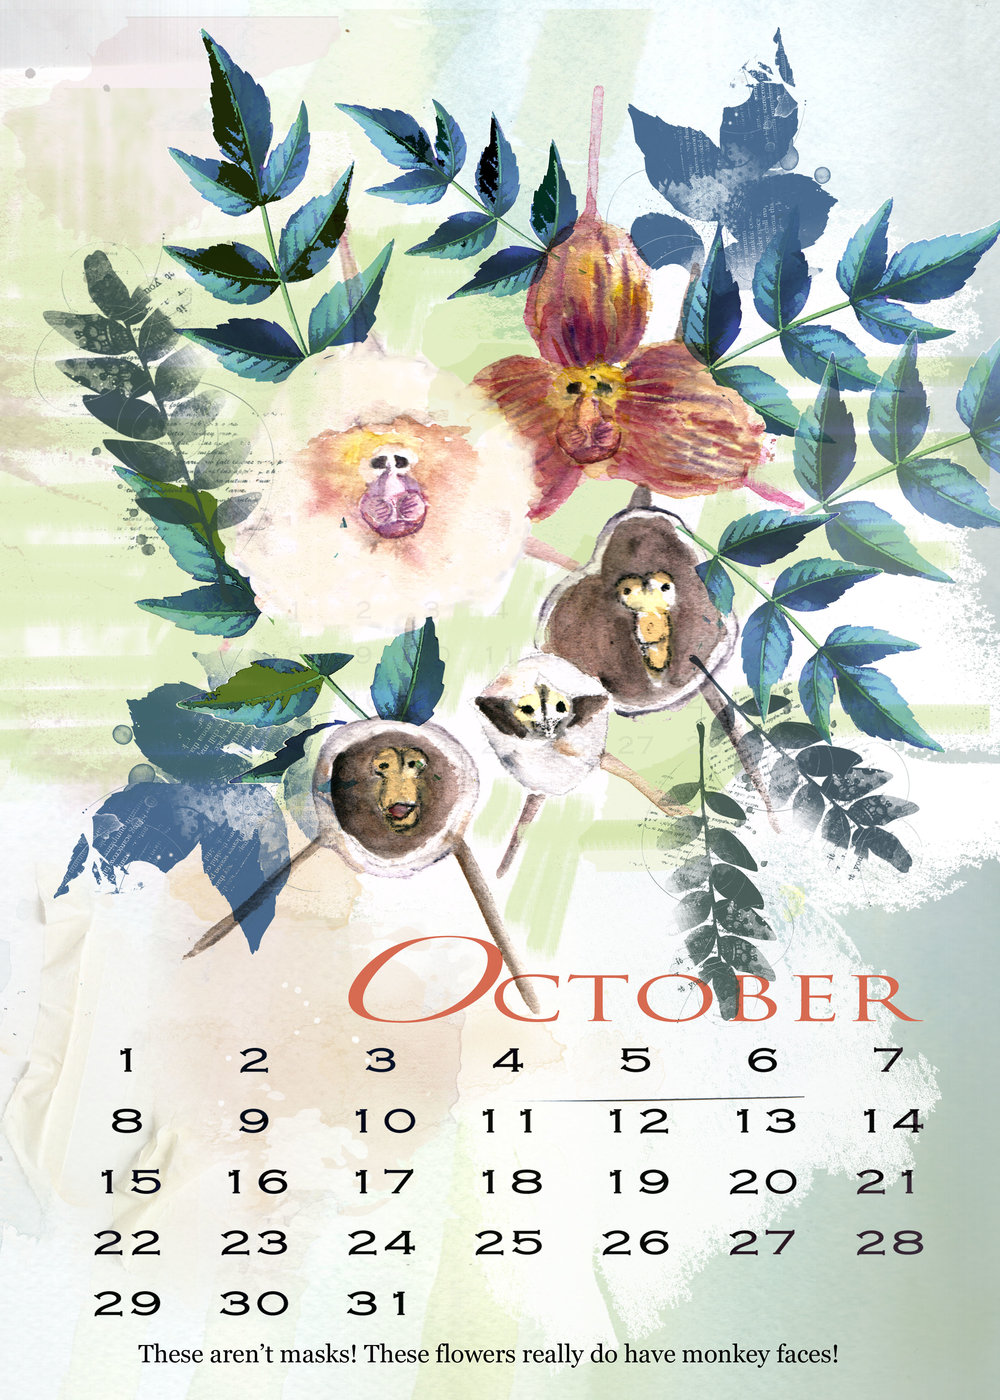 The 2017 Flowers in Wonderland calendar featured real flowers that only look like they might have been  created in the mind of Lewis Carroll. But, like many orchids, these orchids indeed have a strange countenance.